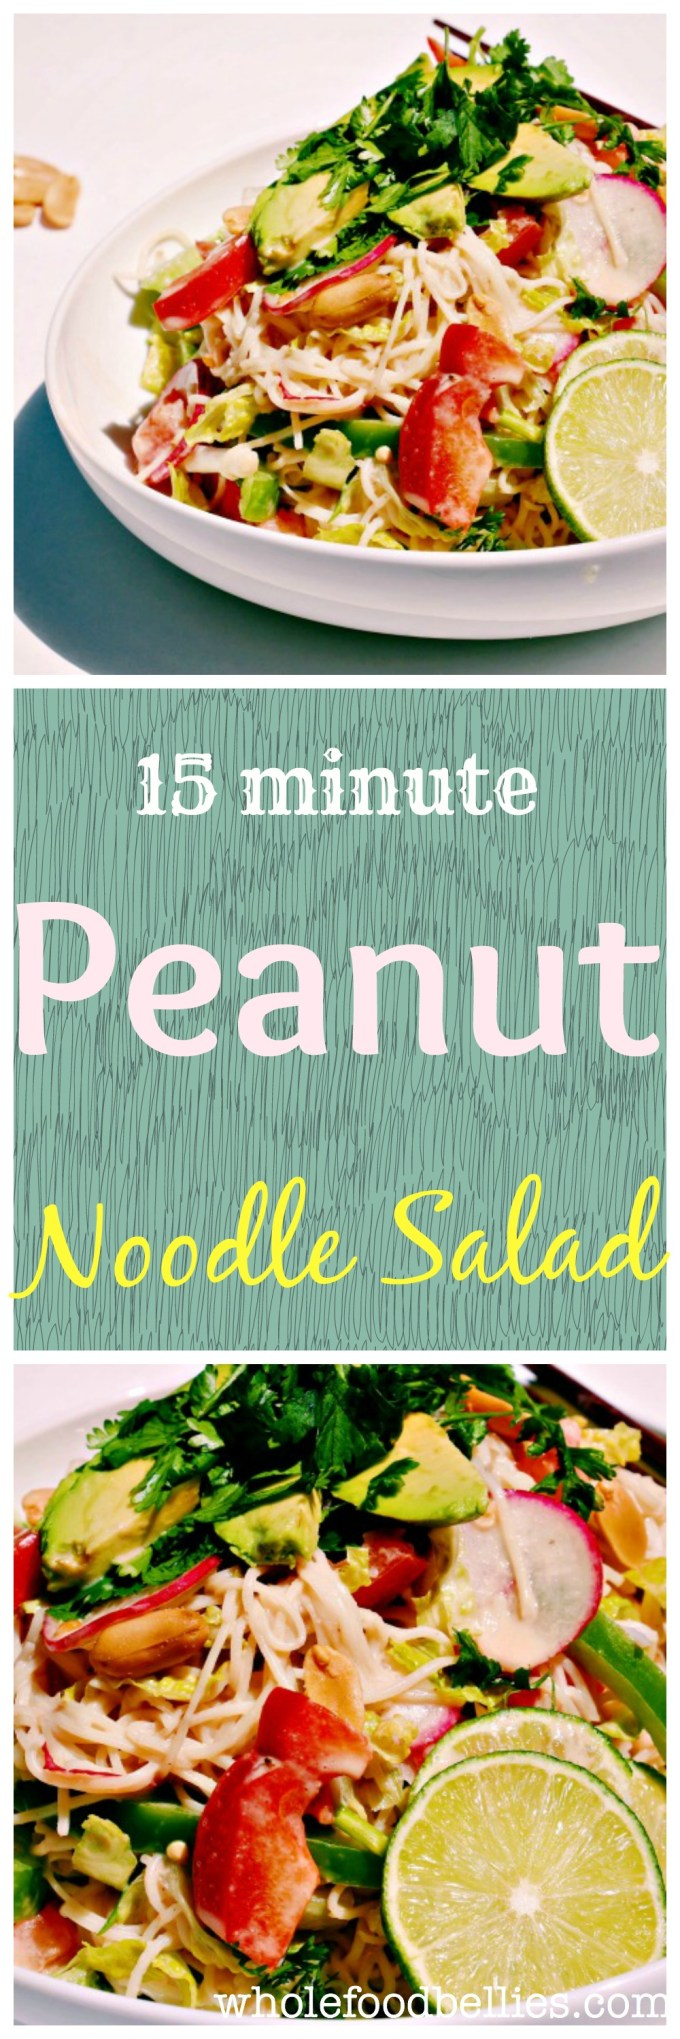 Quick Coconut Peanut Noodle Salad is perfect for a super hot night. It takes 15 minutes to prepare and is super fresh and jammed packed with all the good stuff